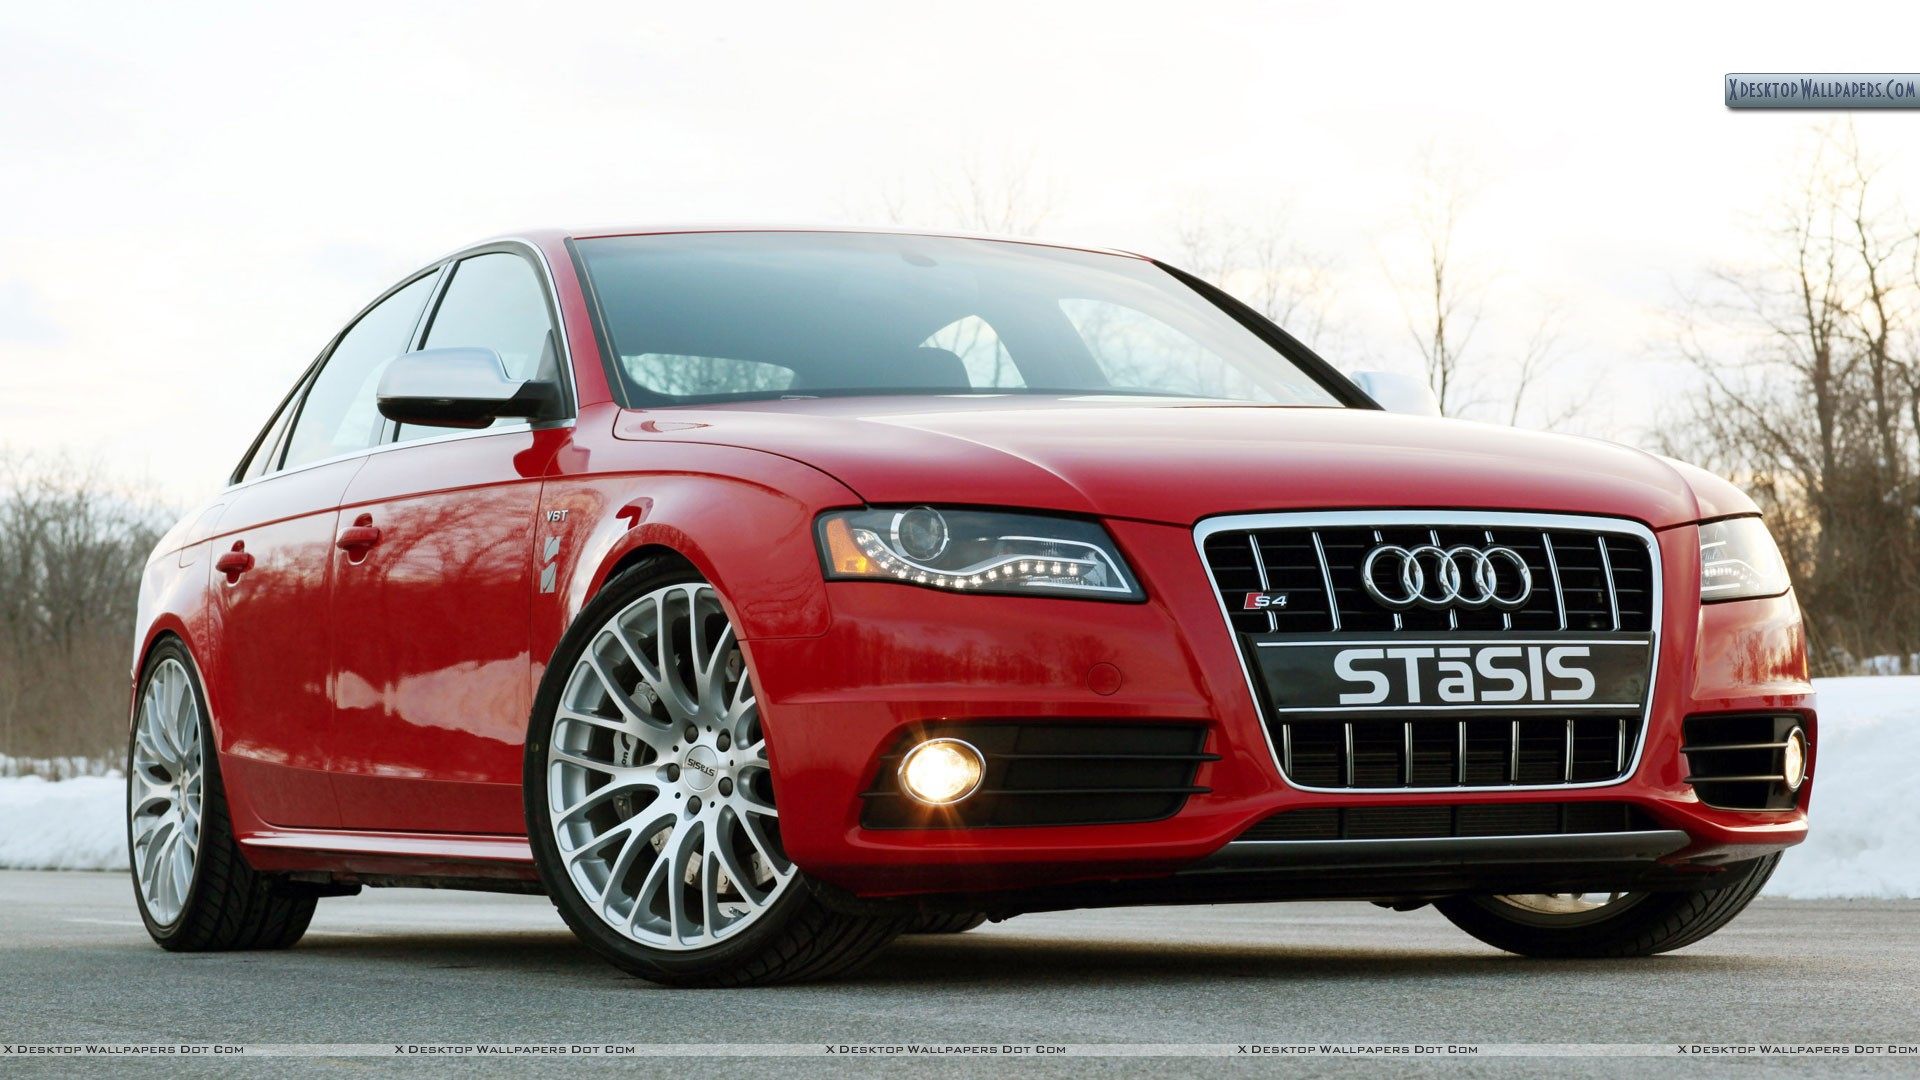 Stasis Signature Audi S4 Red Color Front Pose Wallpaper